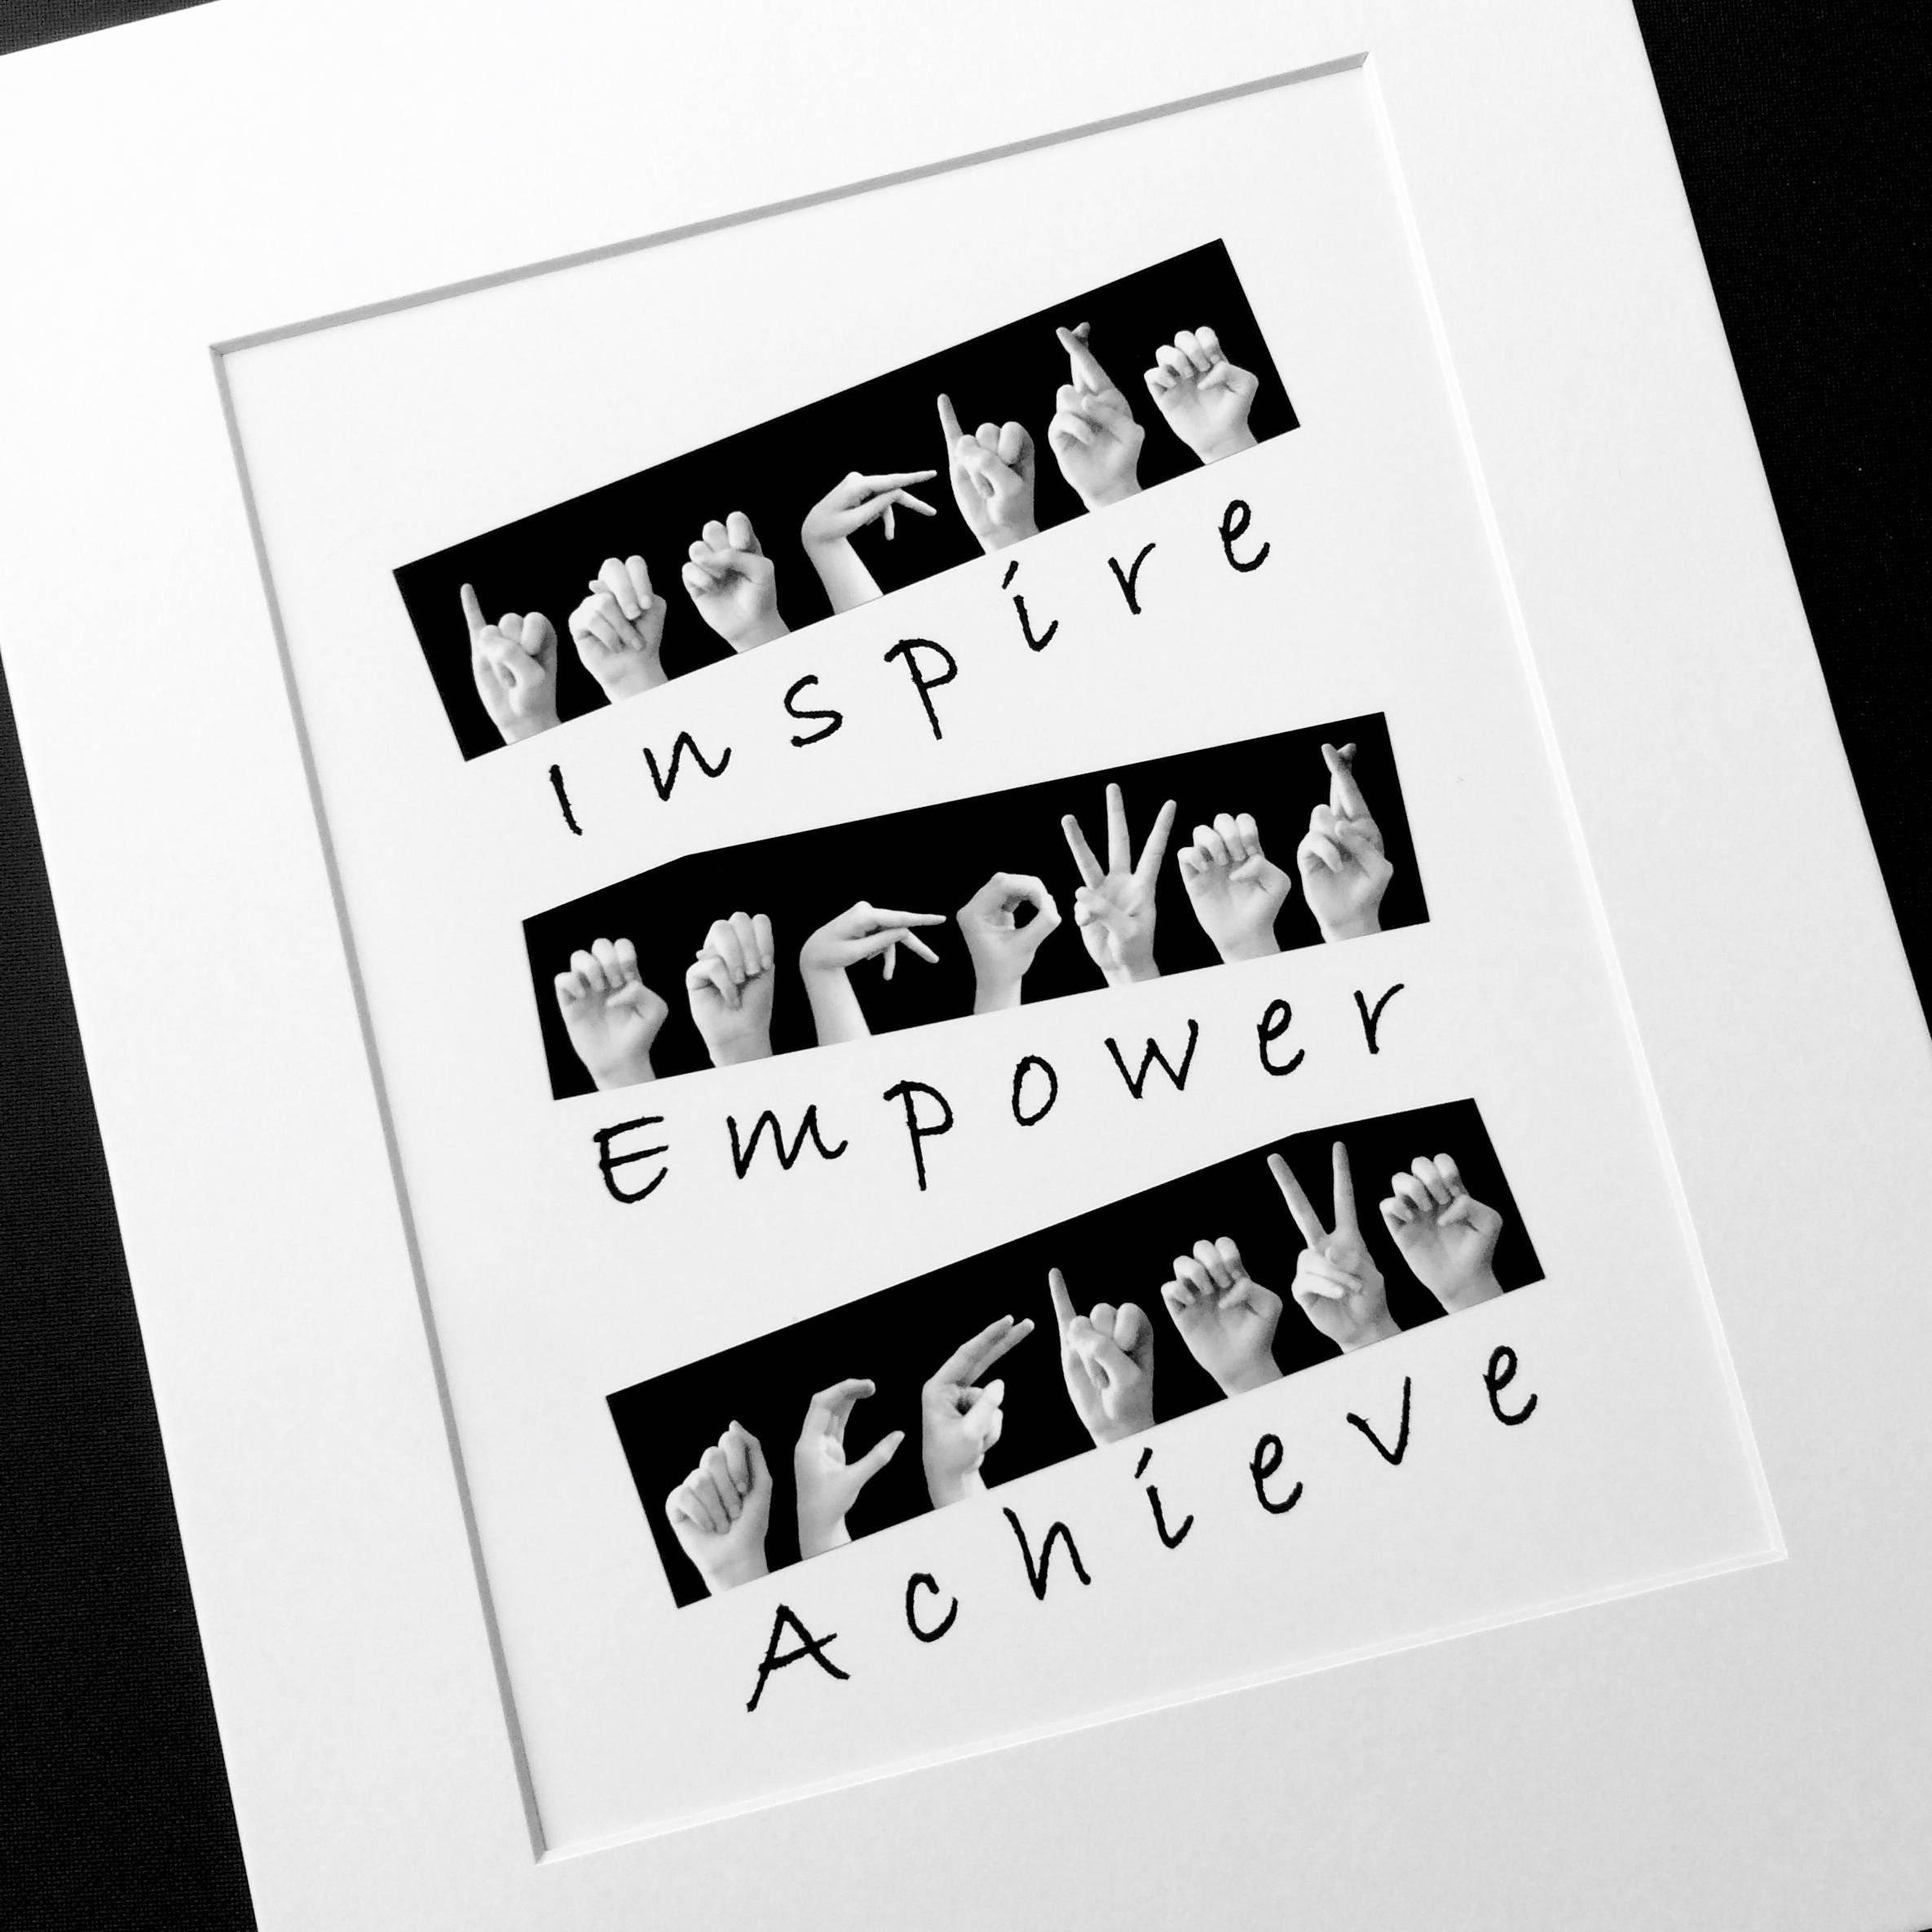 5f70fe17c03ec Inspire Empower Achieve ASL Sign Language Letters - Inspirational ...